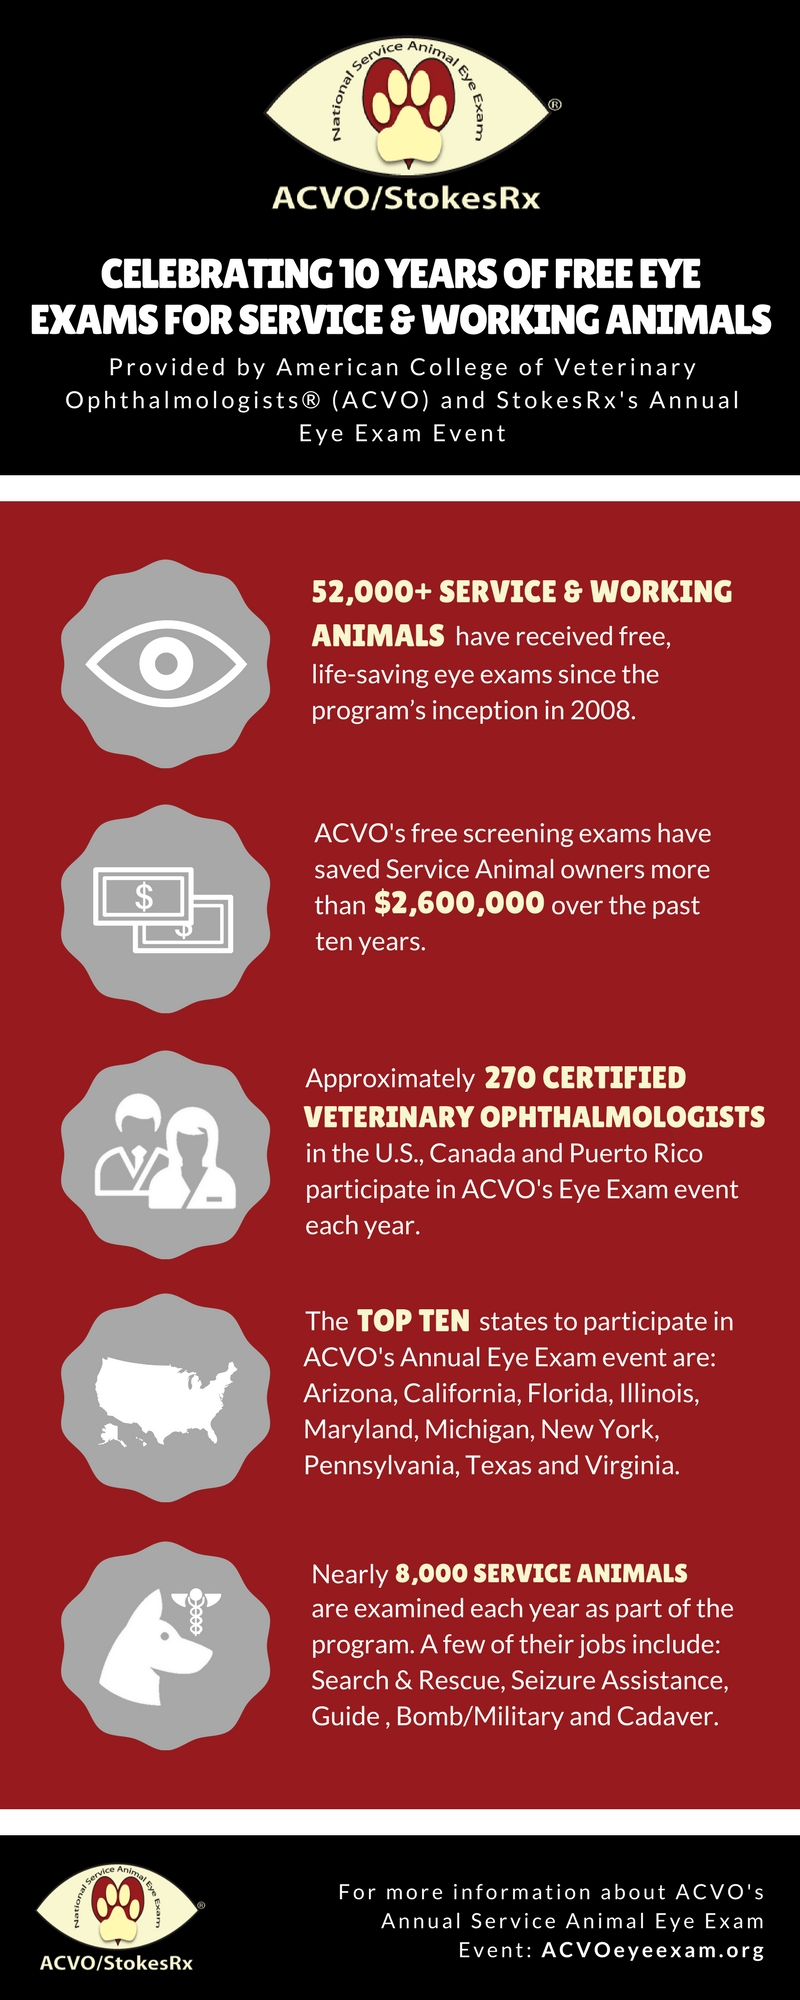 ACVO_10 Year Anniversary Infographic_FINAL_03 20 17.jpg